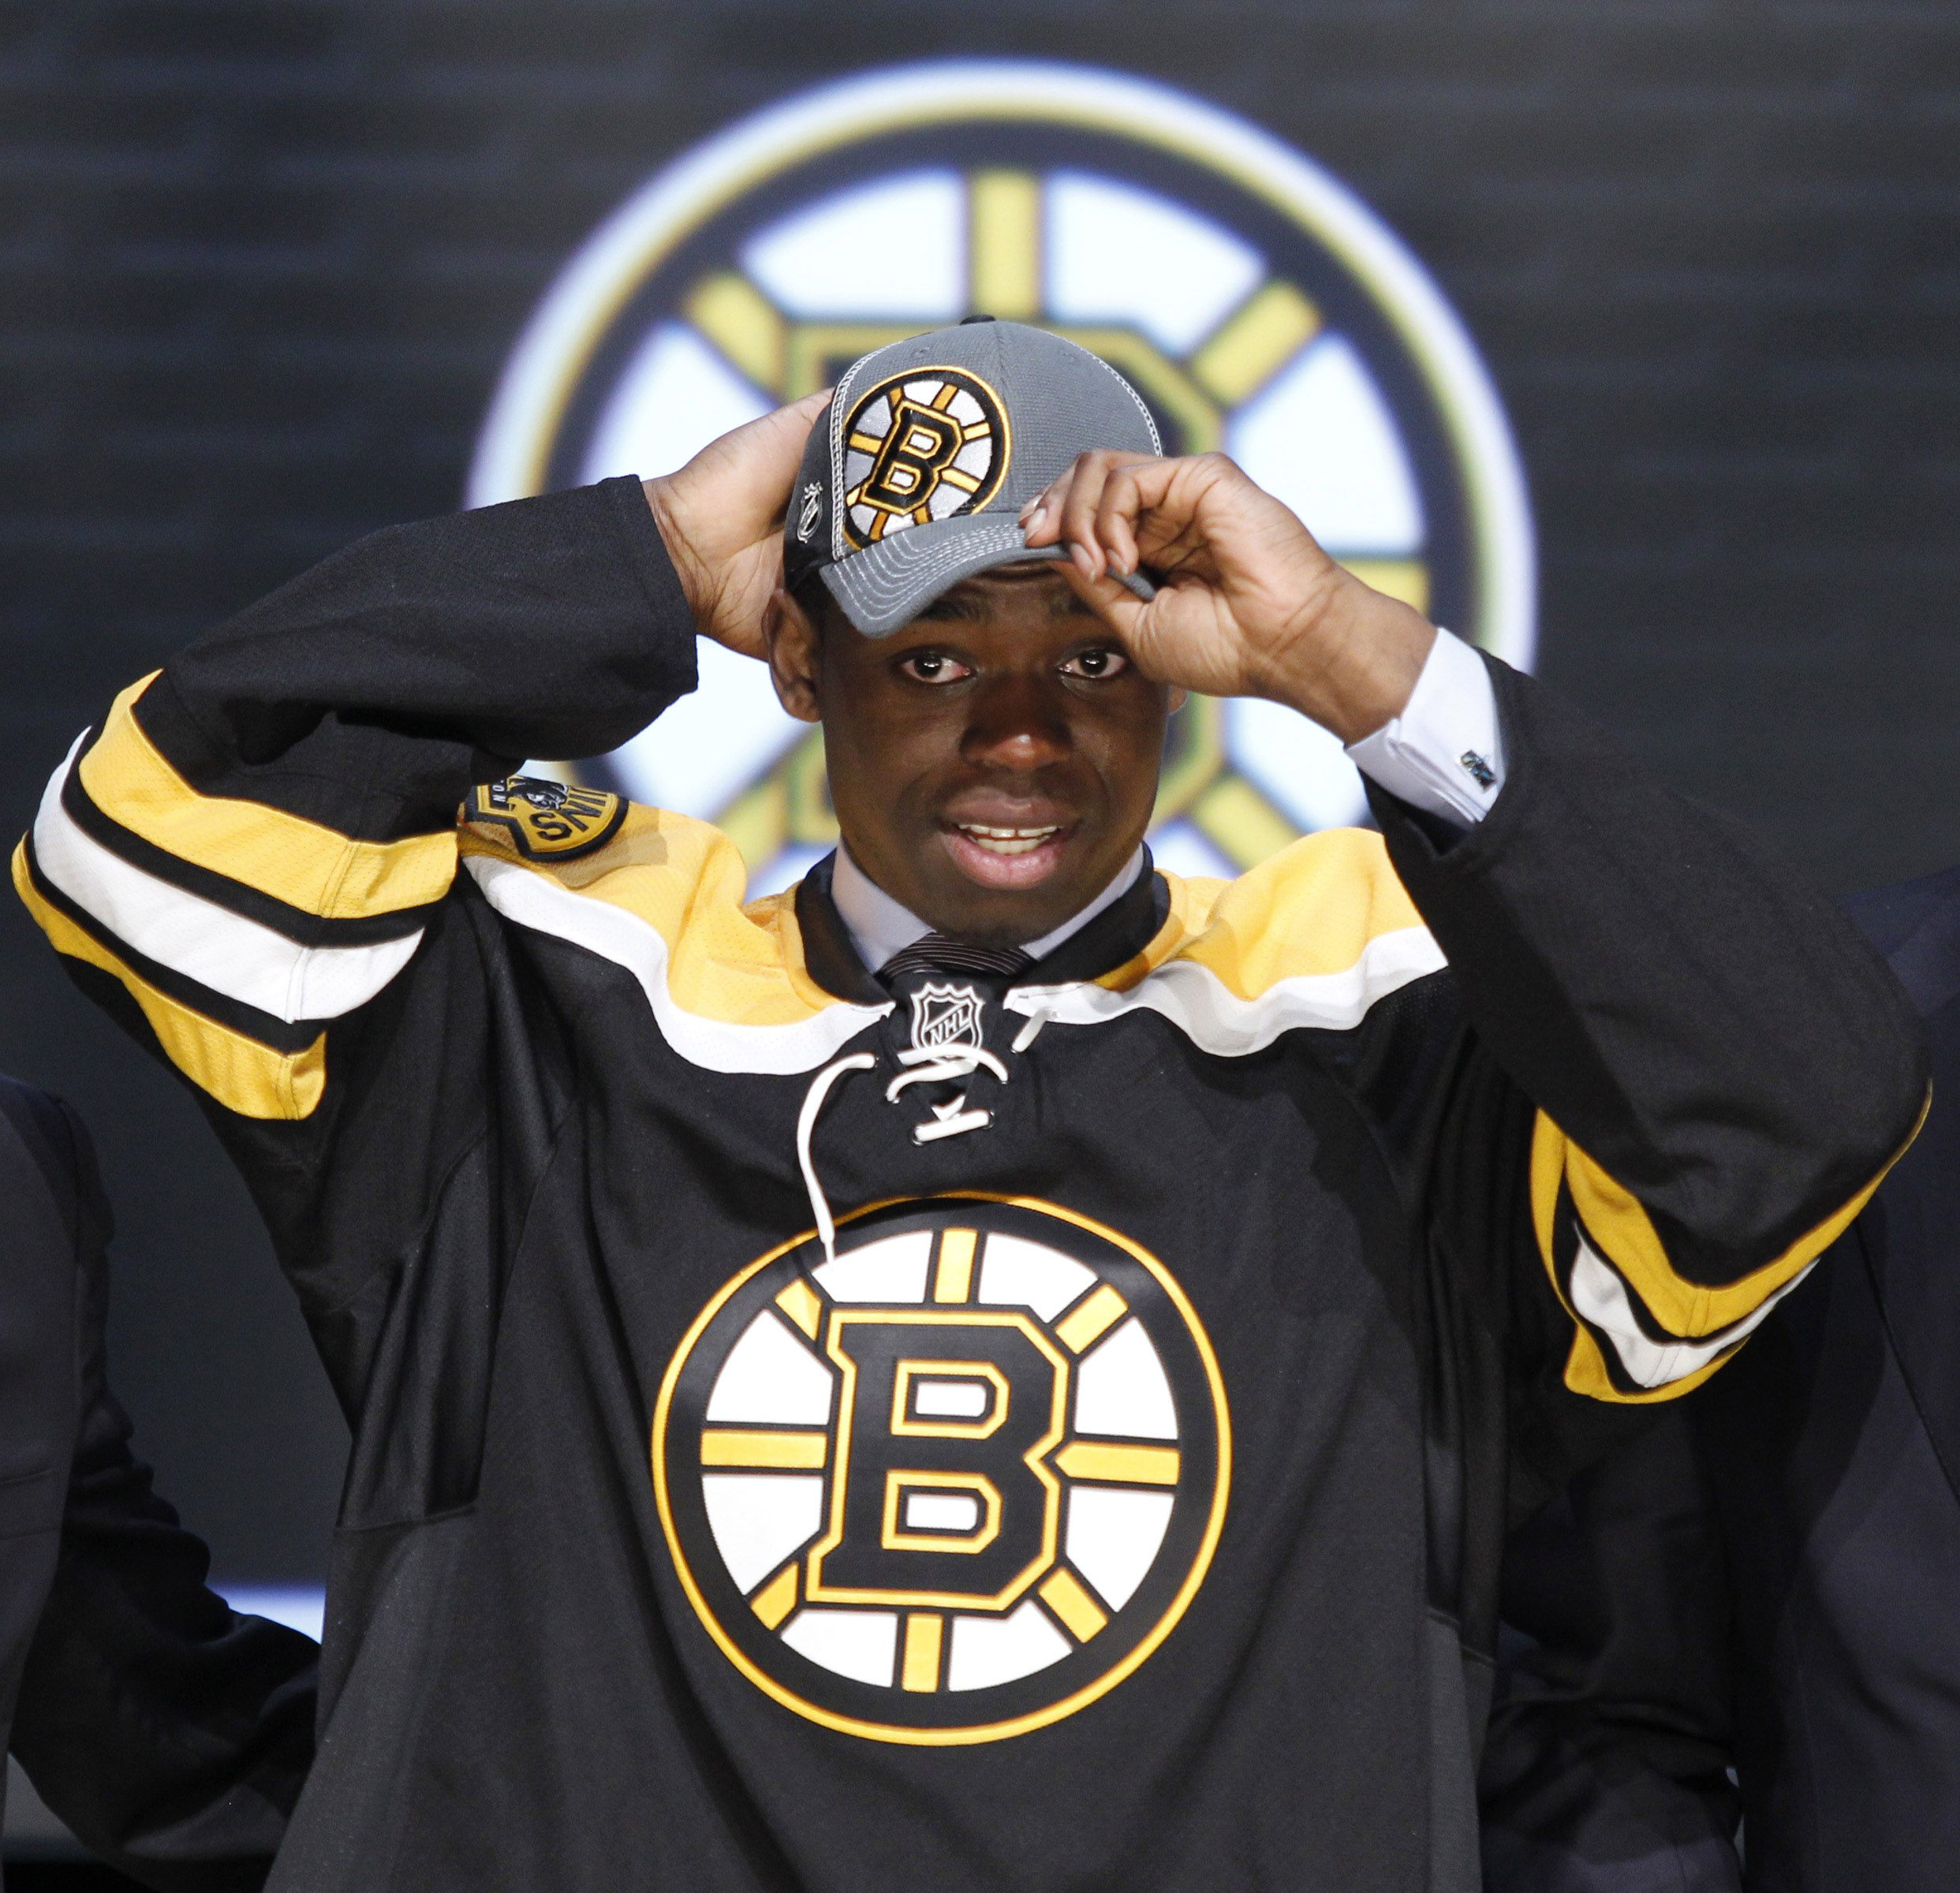 Bruins Expecting High End Youth At Development Camp The Boston Globe